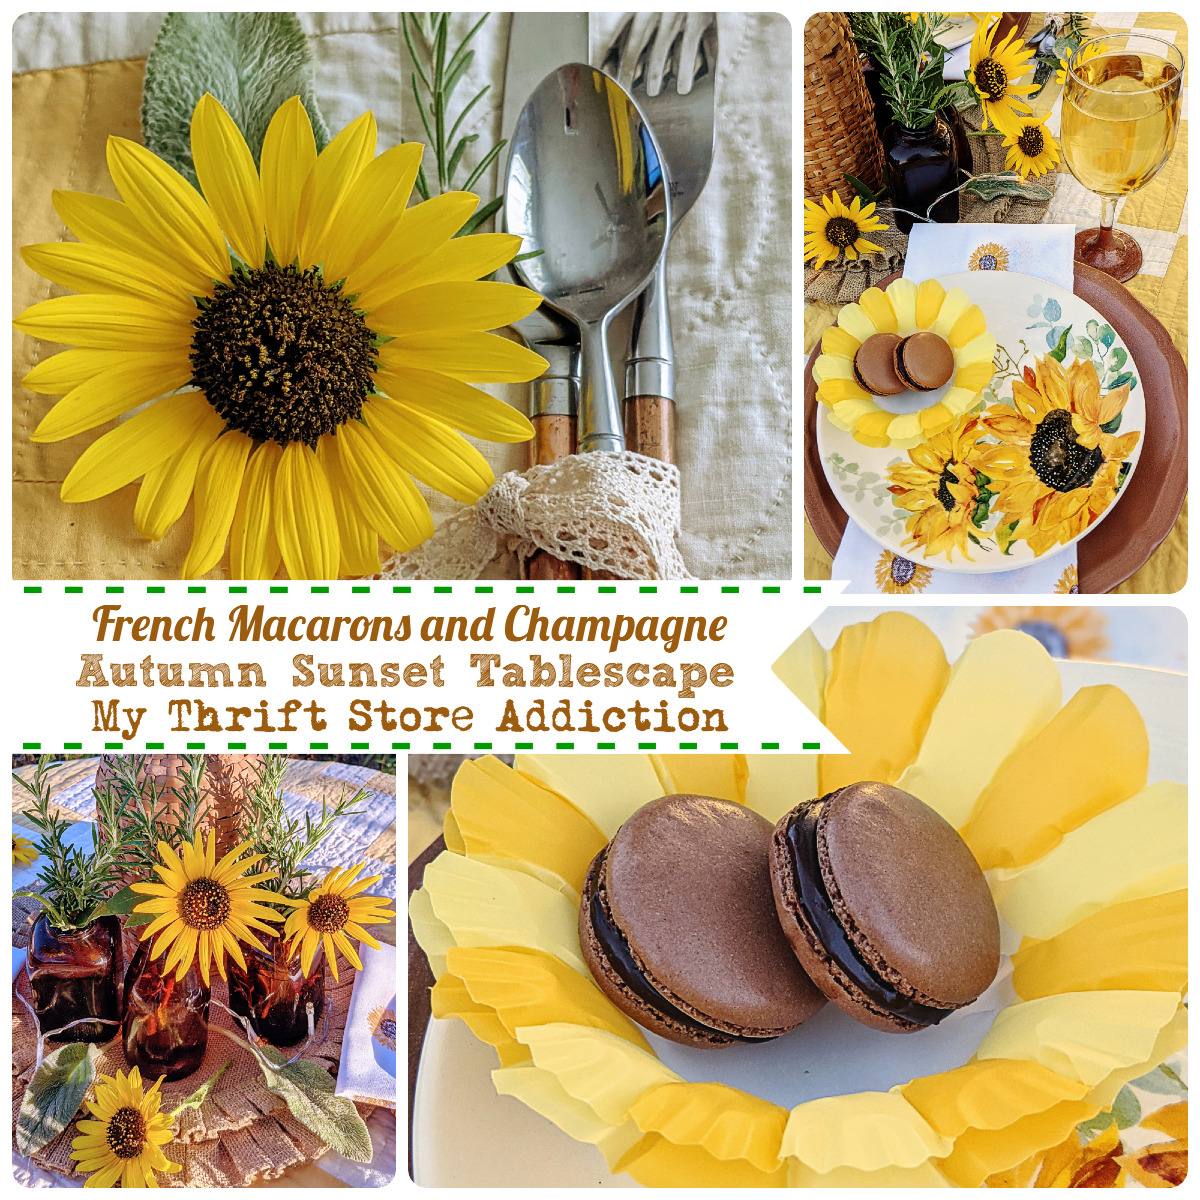 French macarons and champagne in the garden fall table